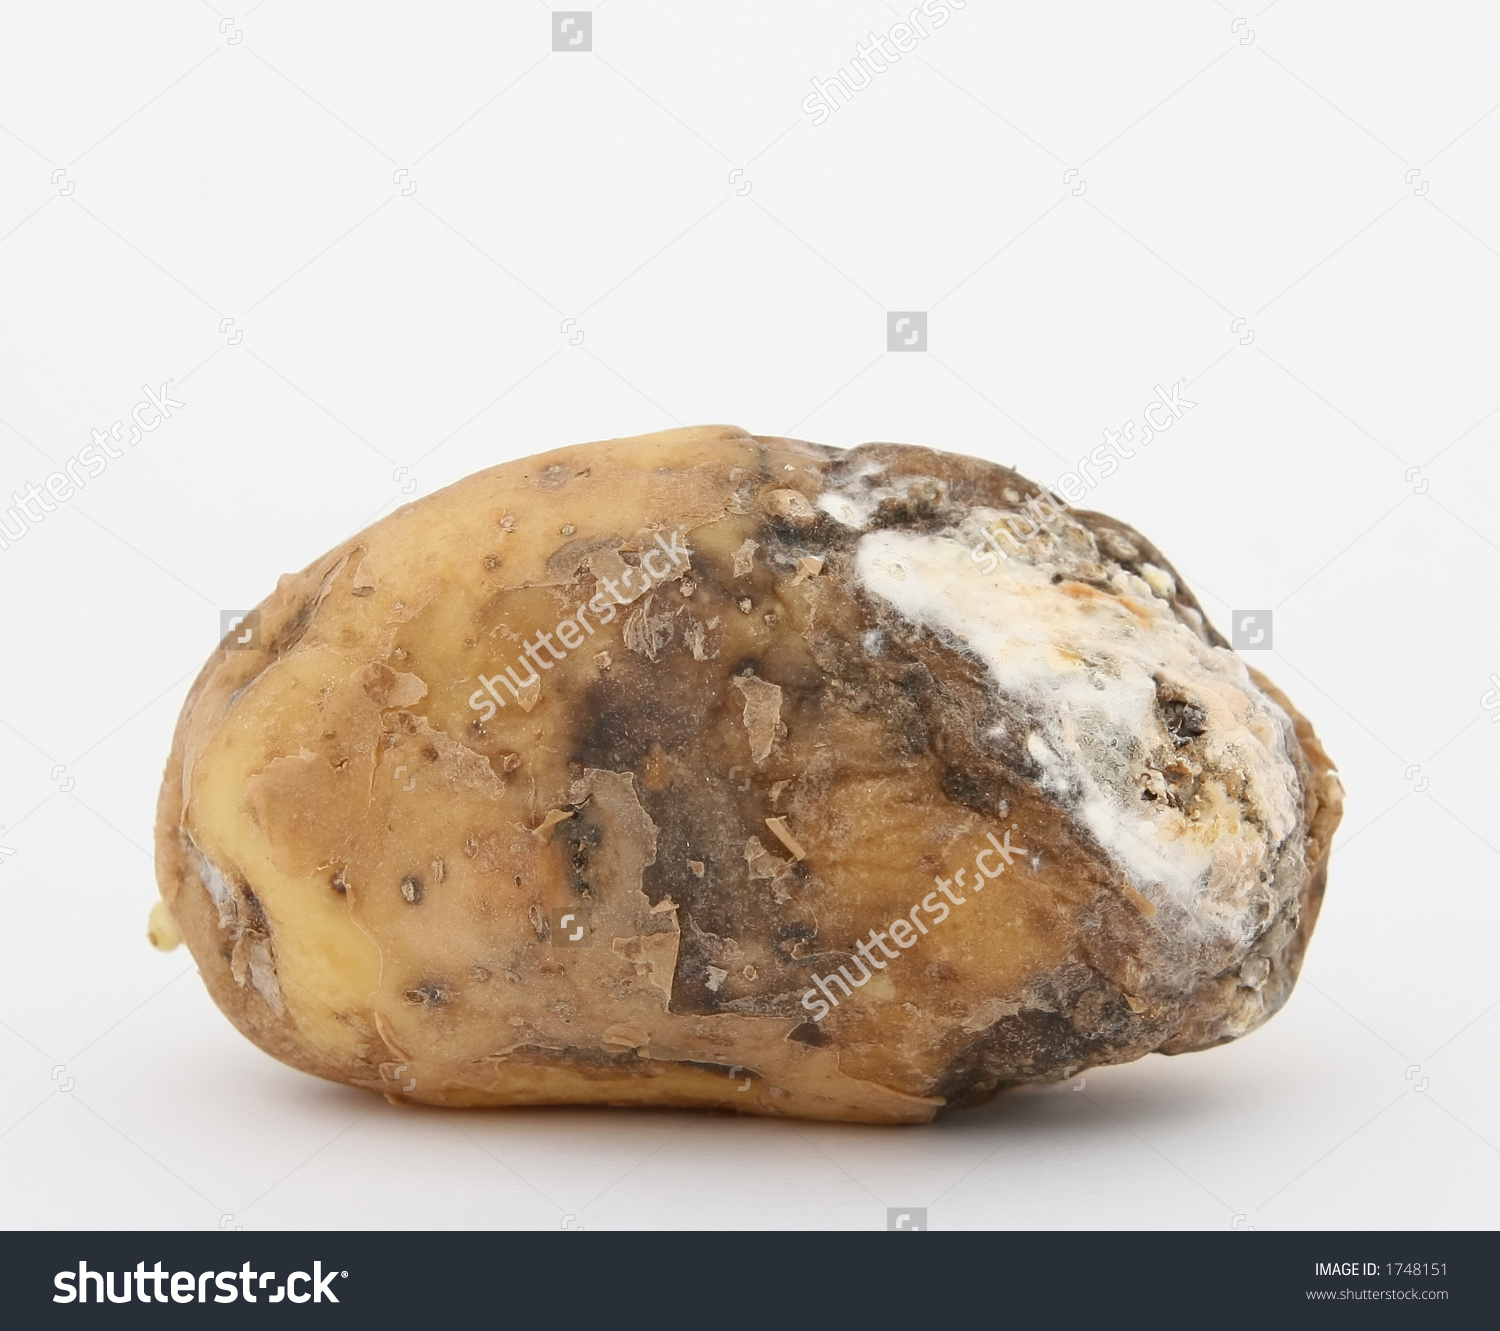 Rotten Potato Copy Space Isolated On Stock Photo 1748151.